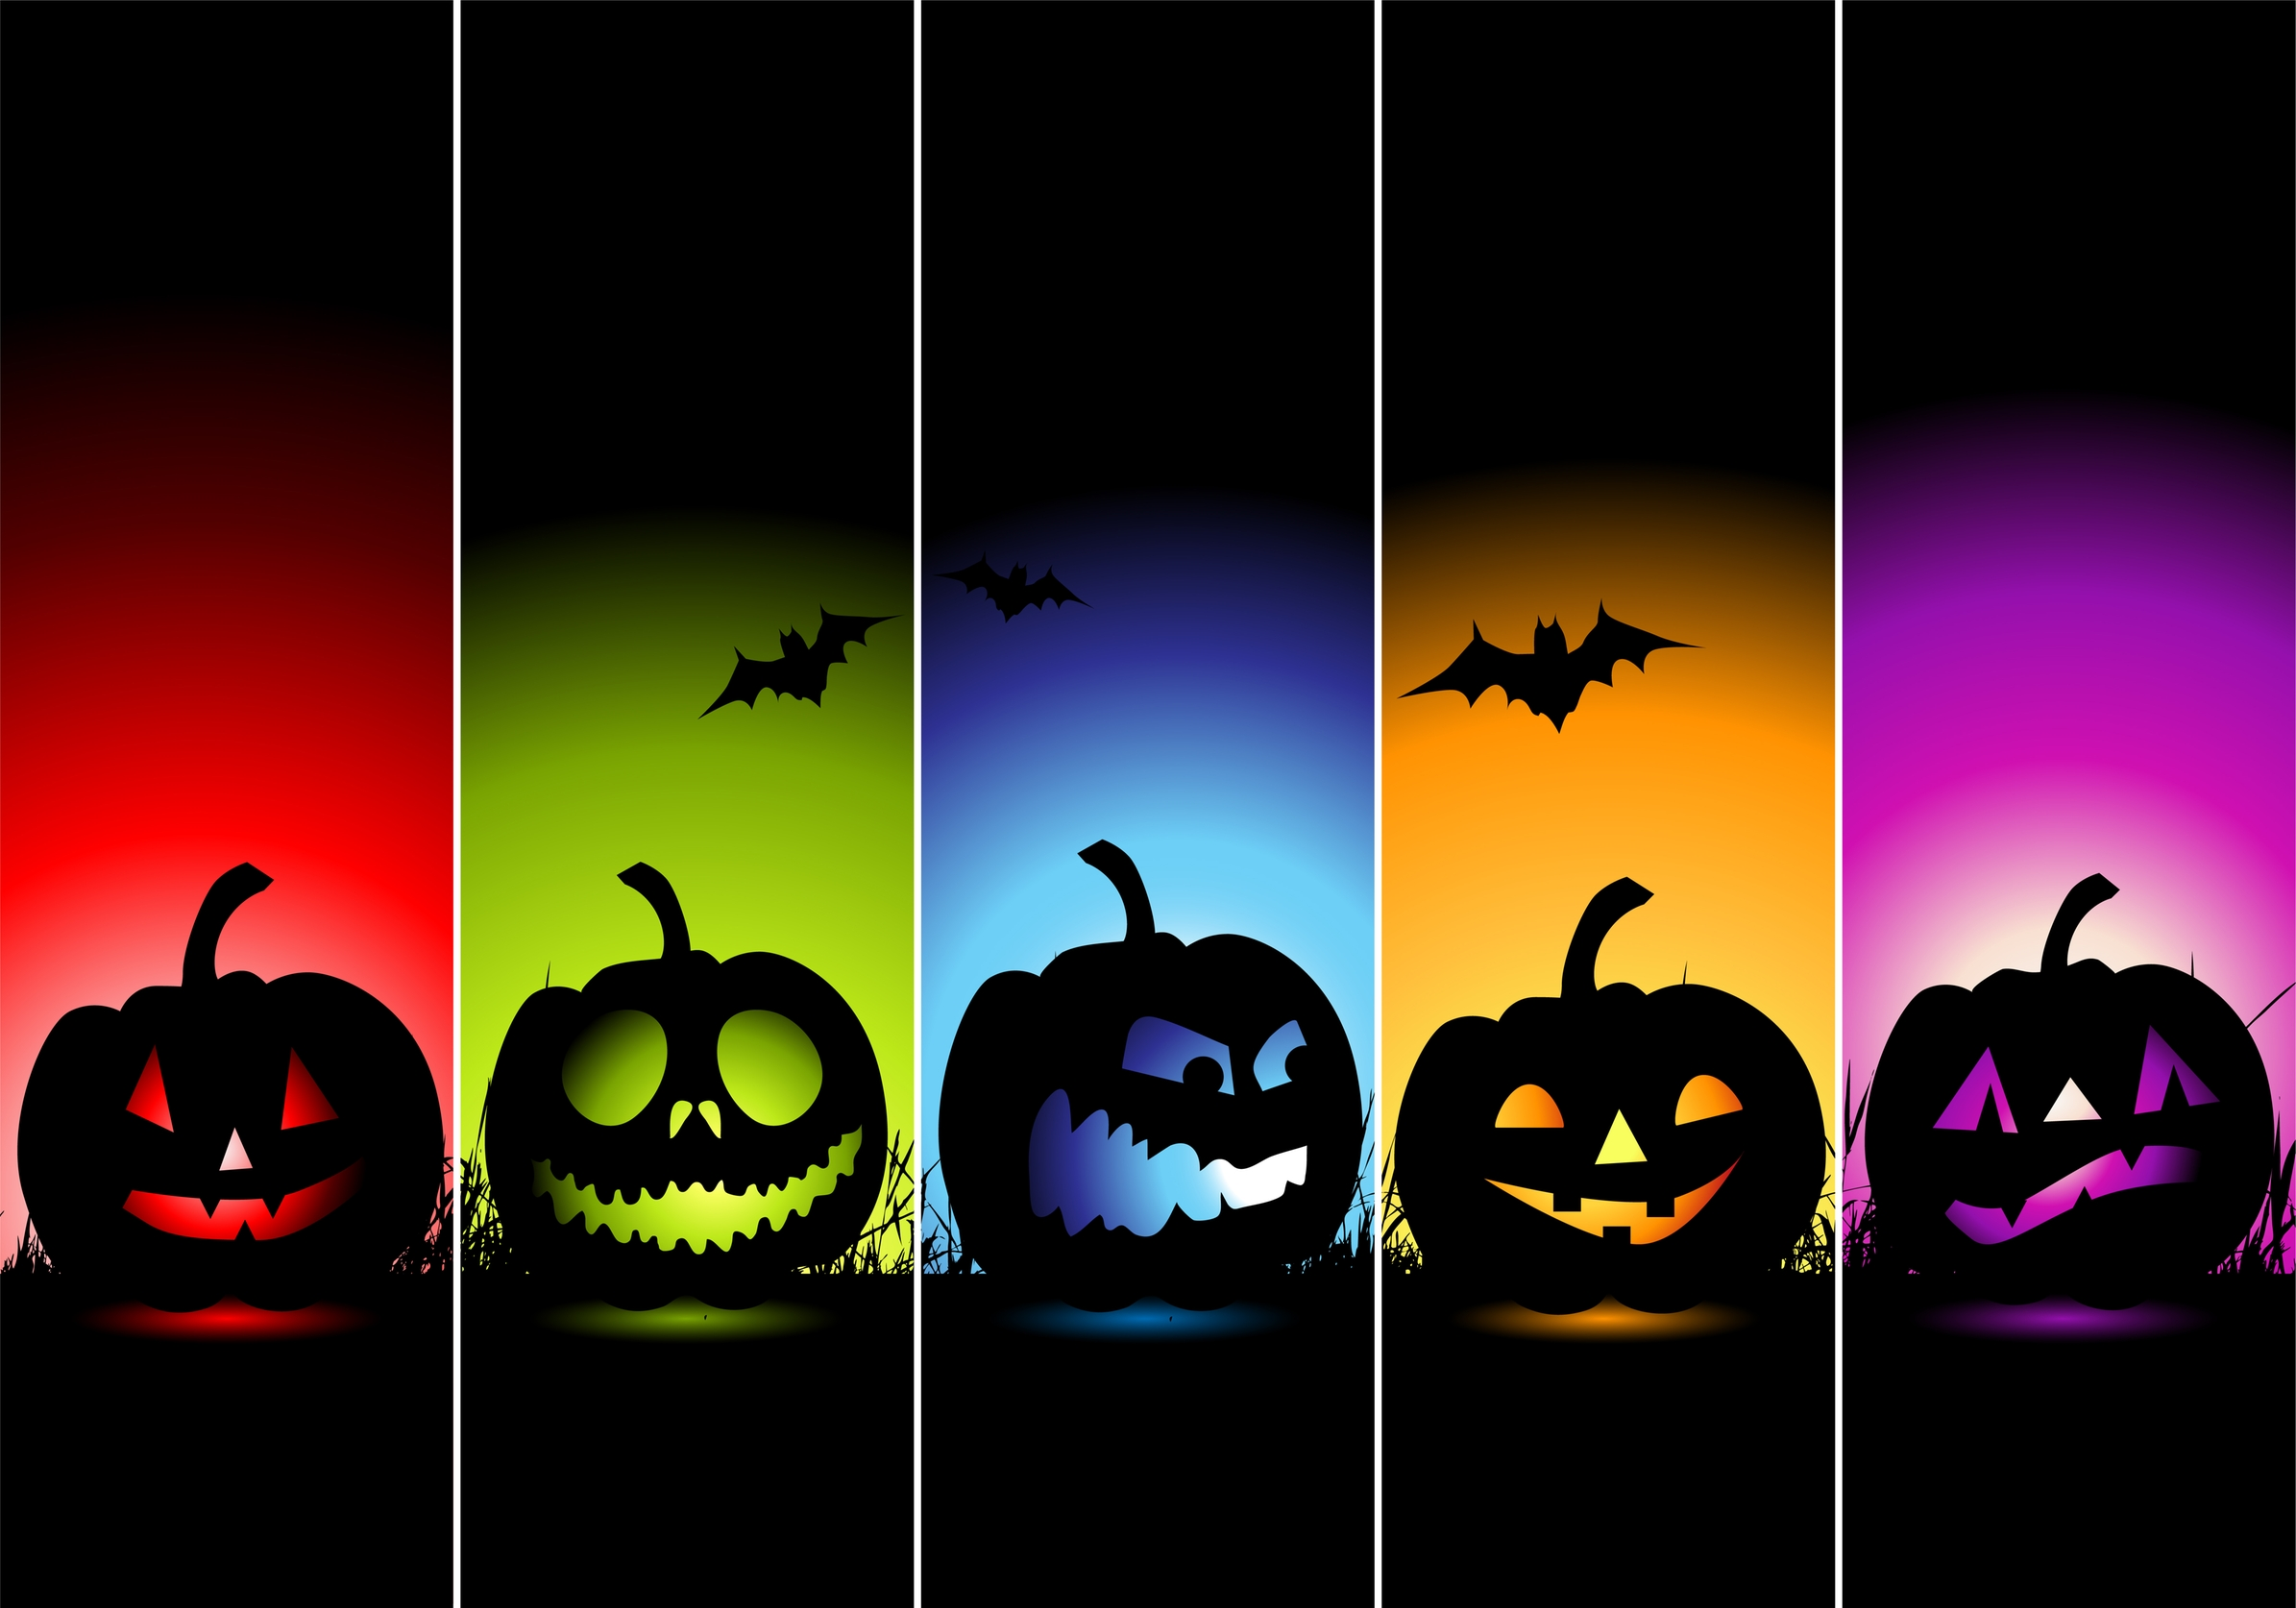 Colorful Halloween Horor Wallpaper